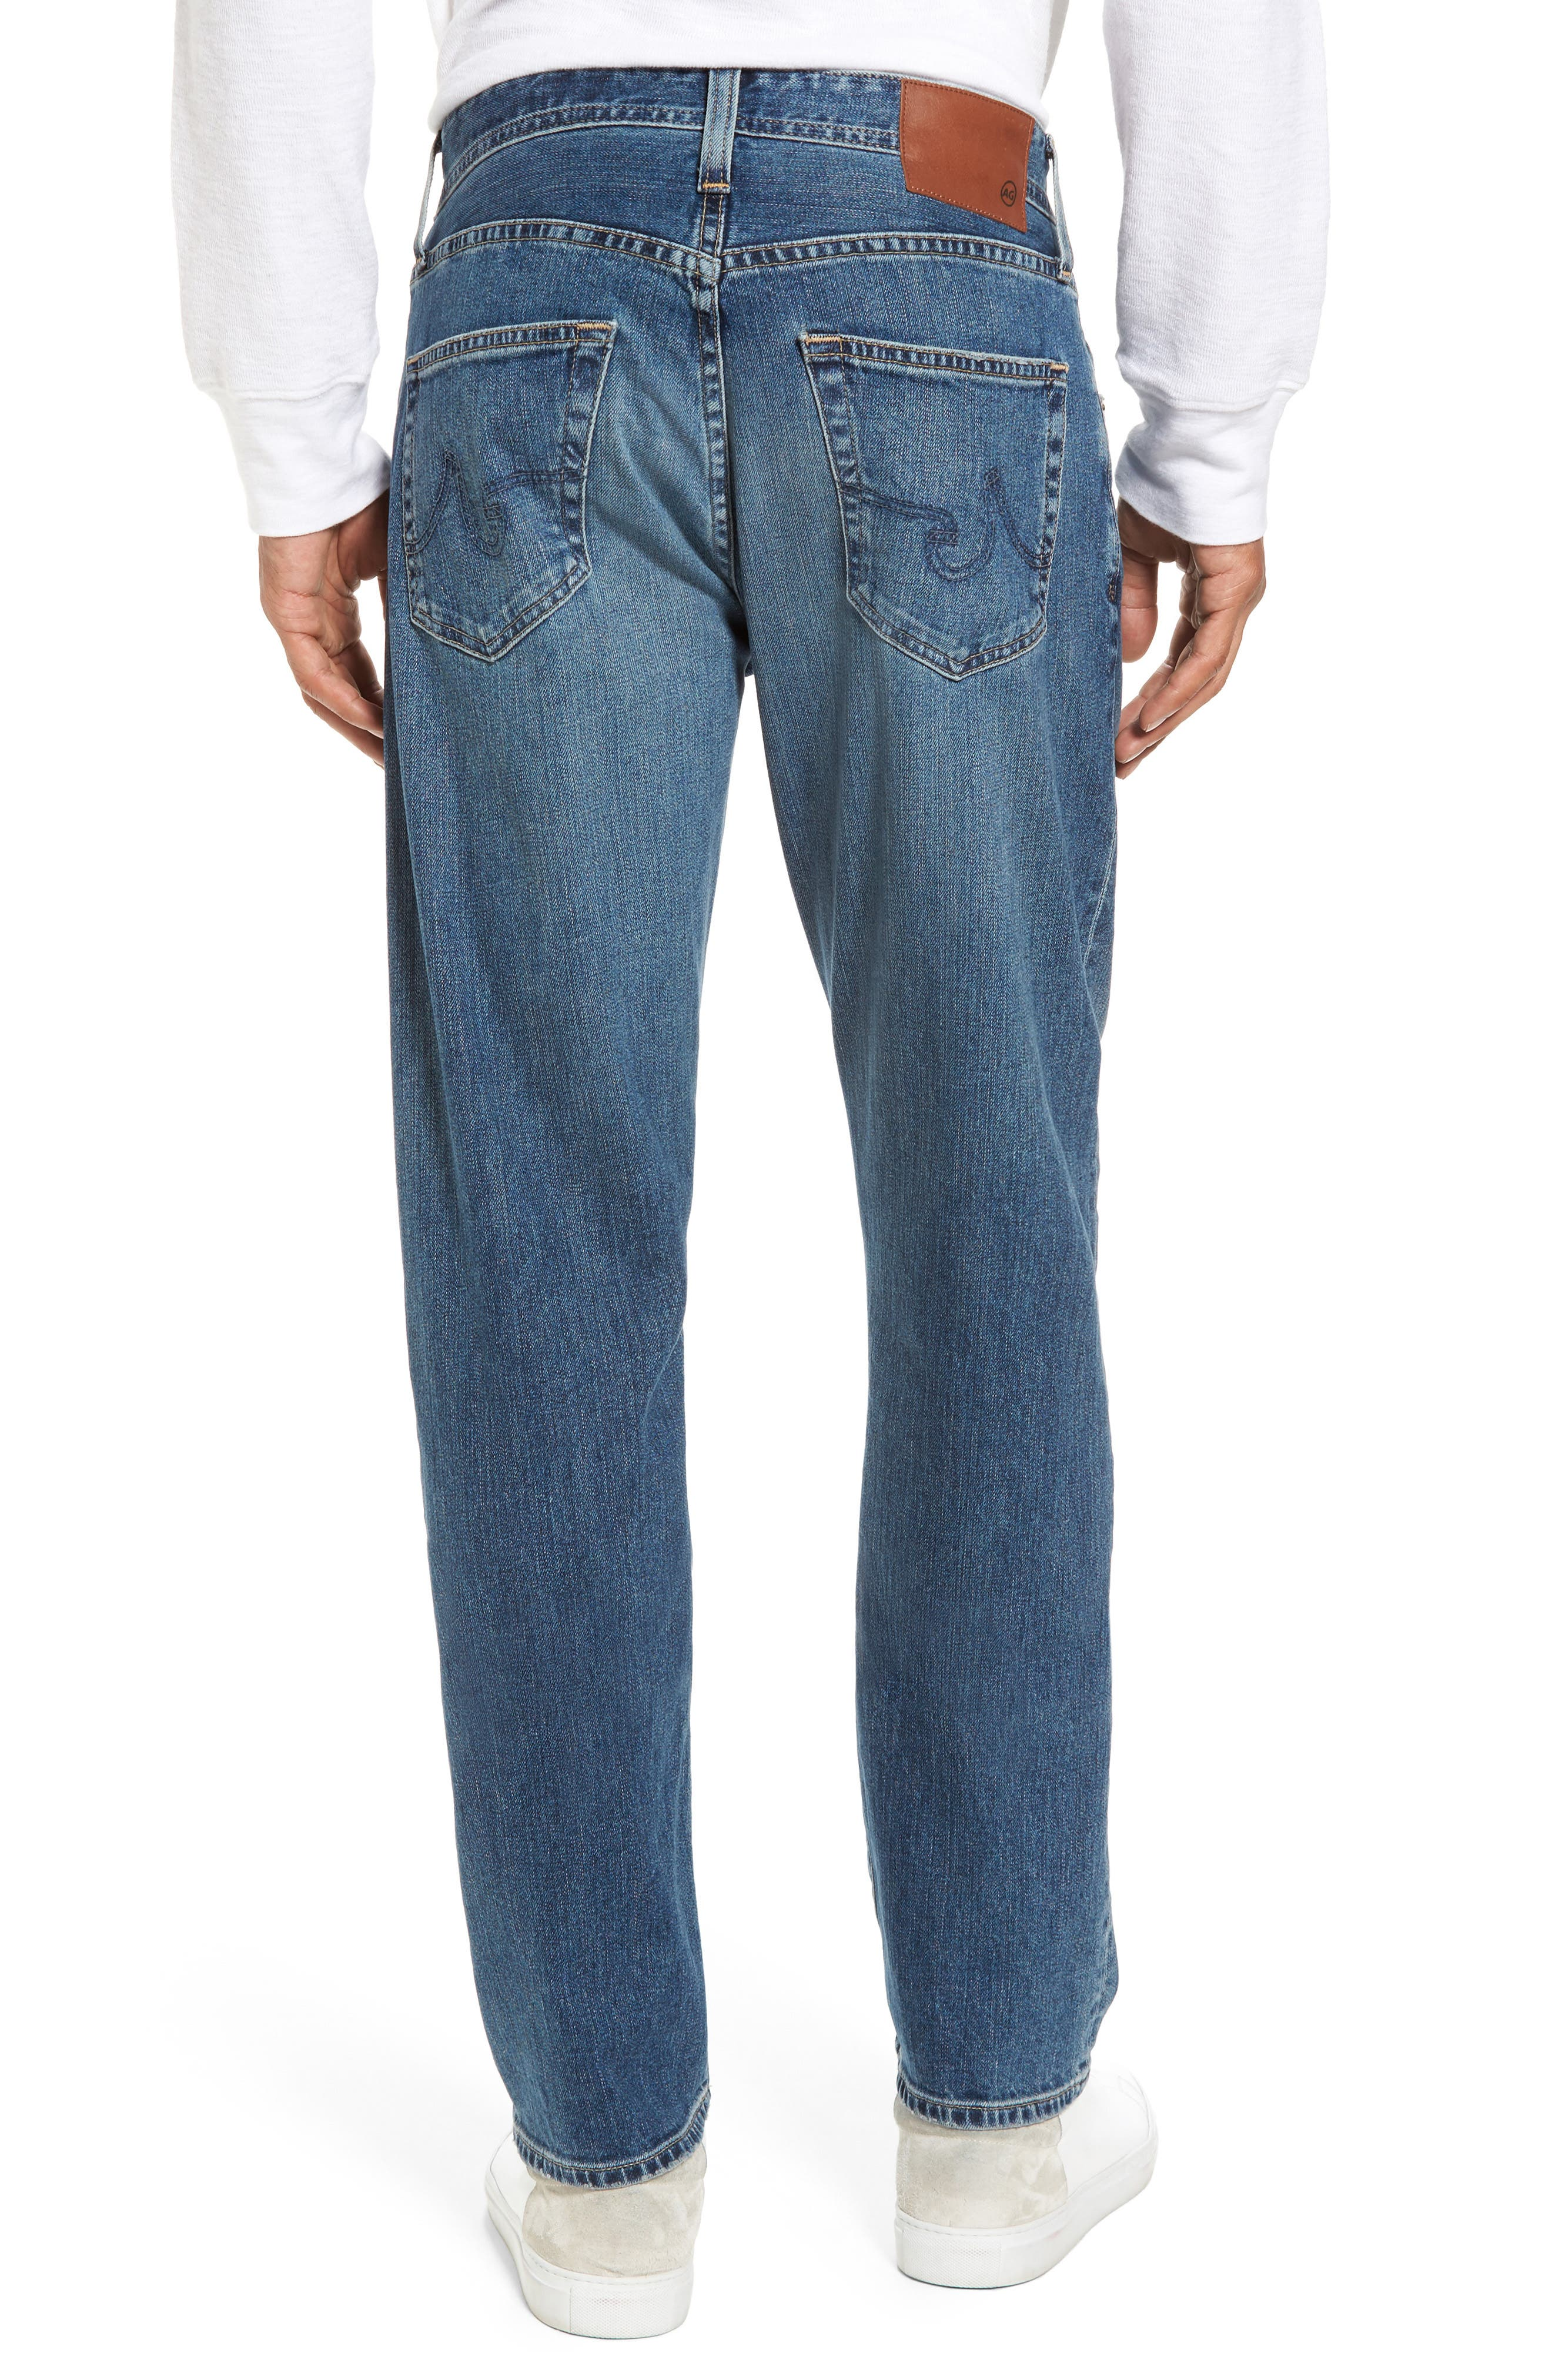 Ives Straight Fit Jeans,                             Alternate thumbnail 2, color,                             419